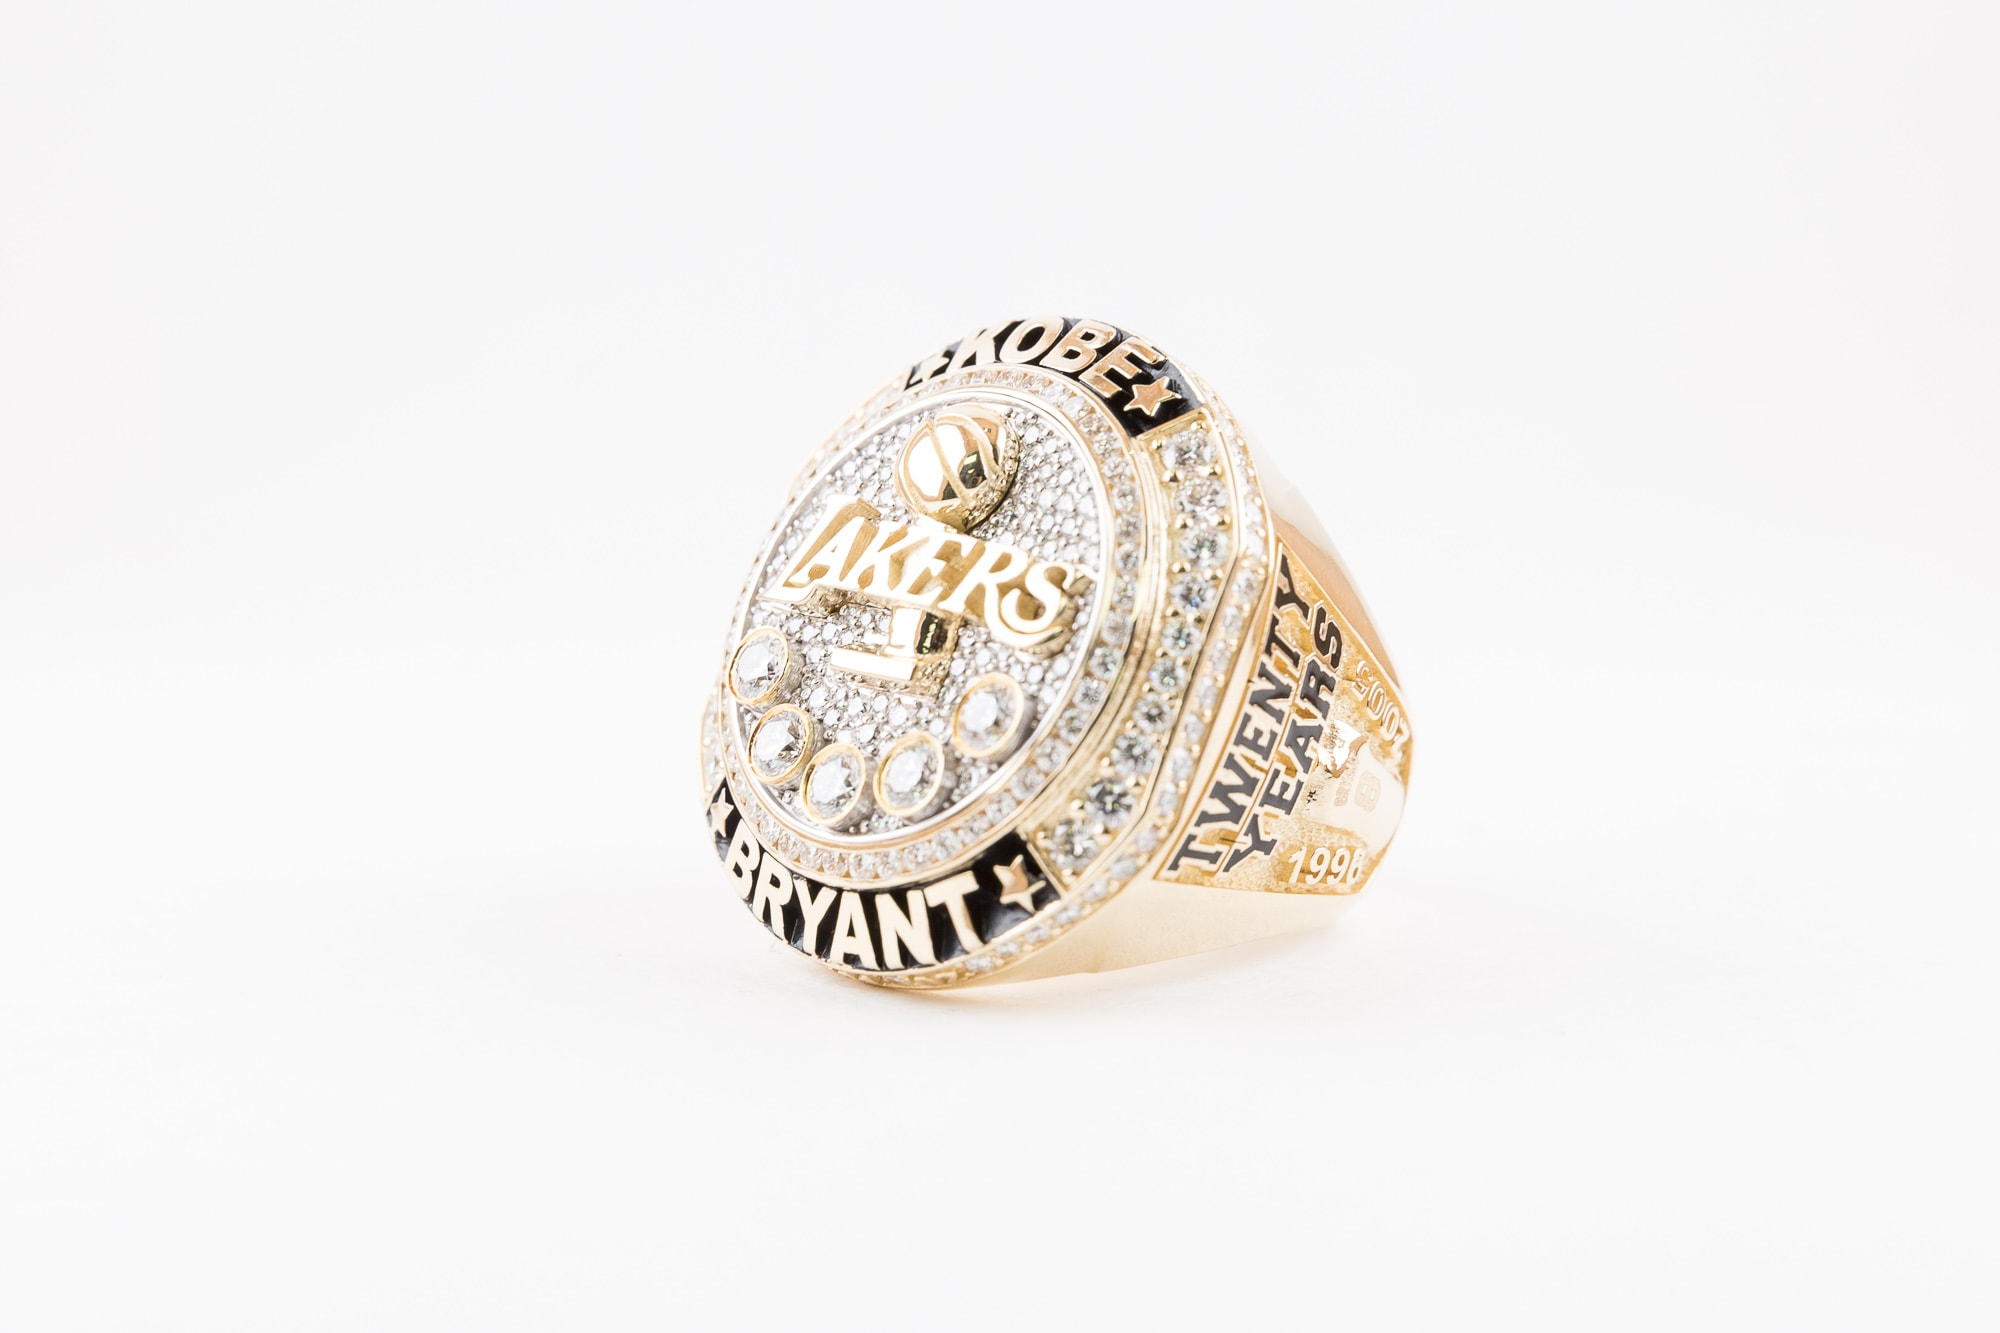 Lakers Present Kobe Bryant With Retirement Ring